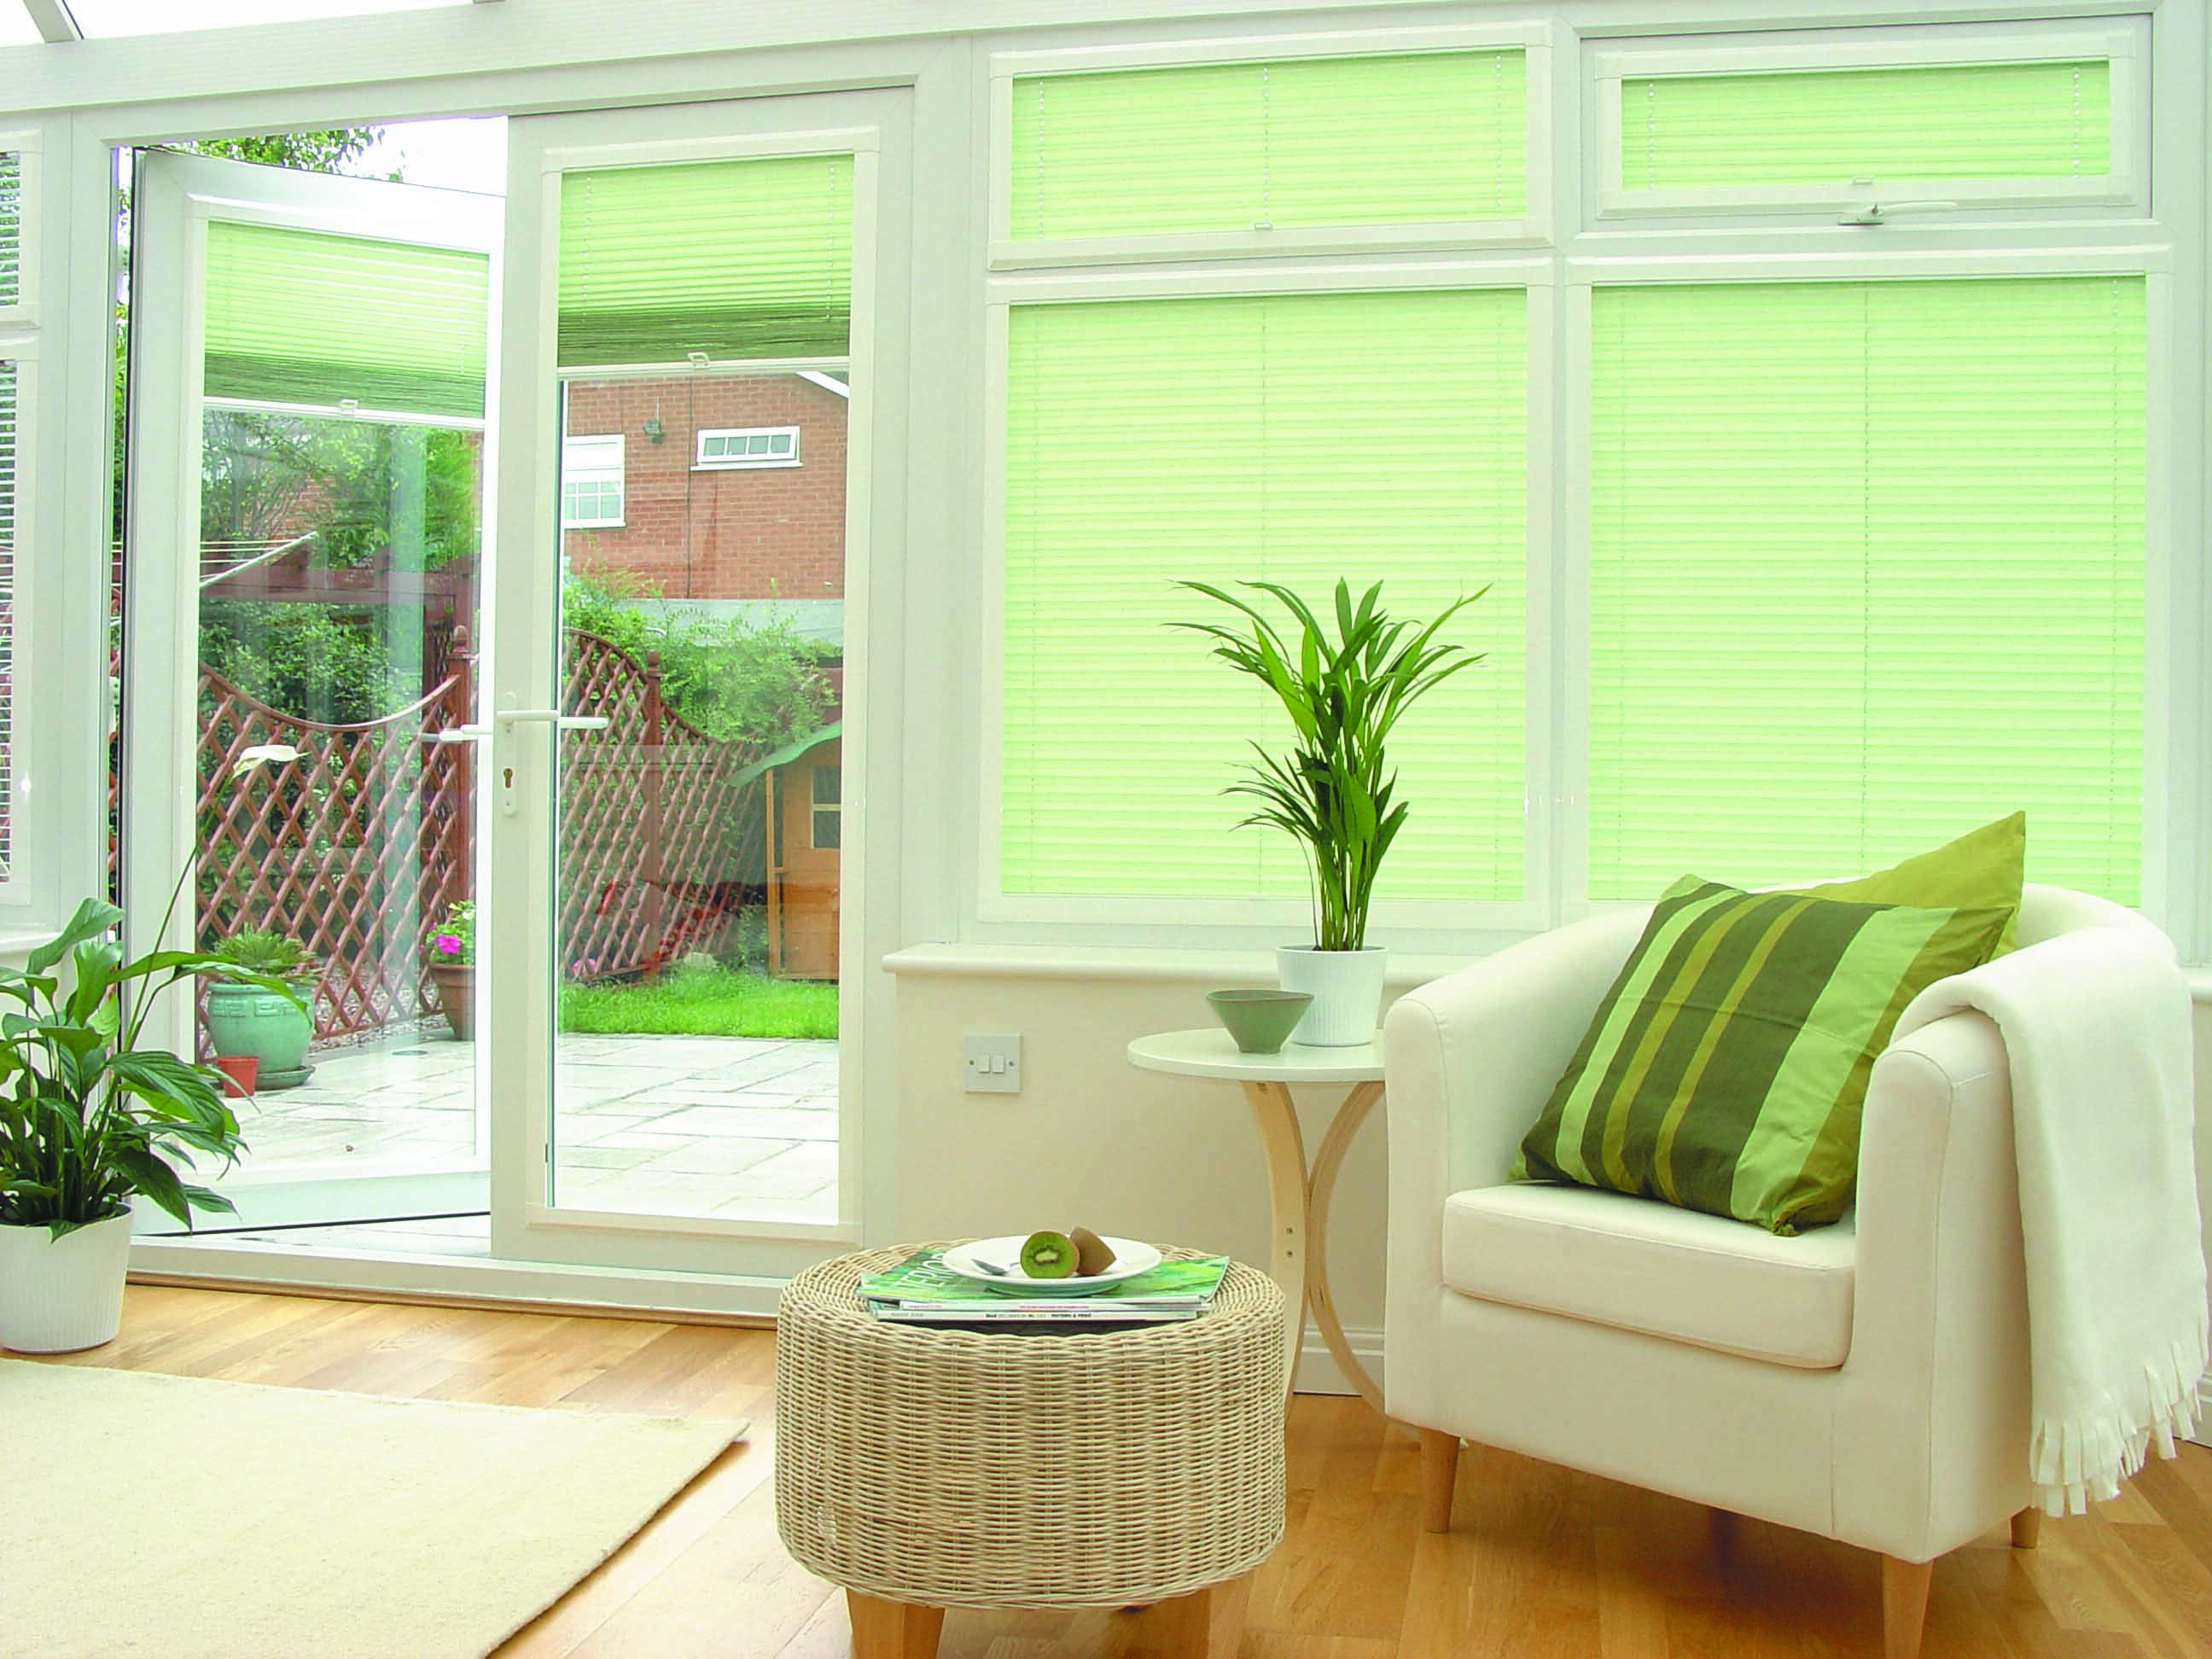 Perfect-Fit blinds for uPVC window